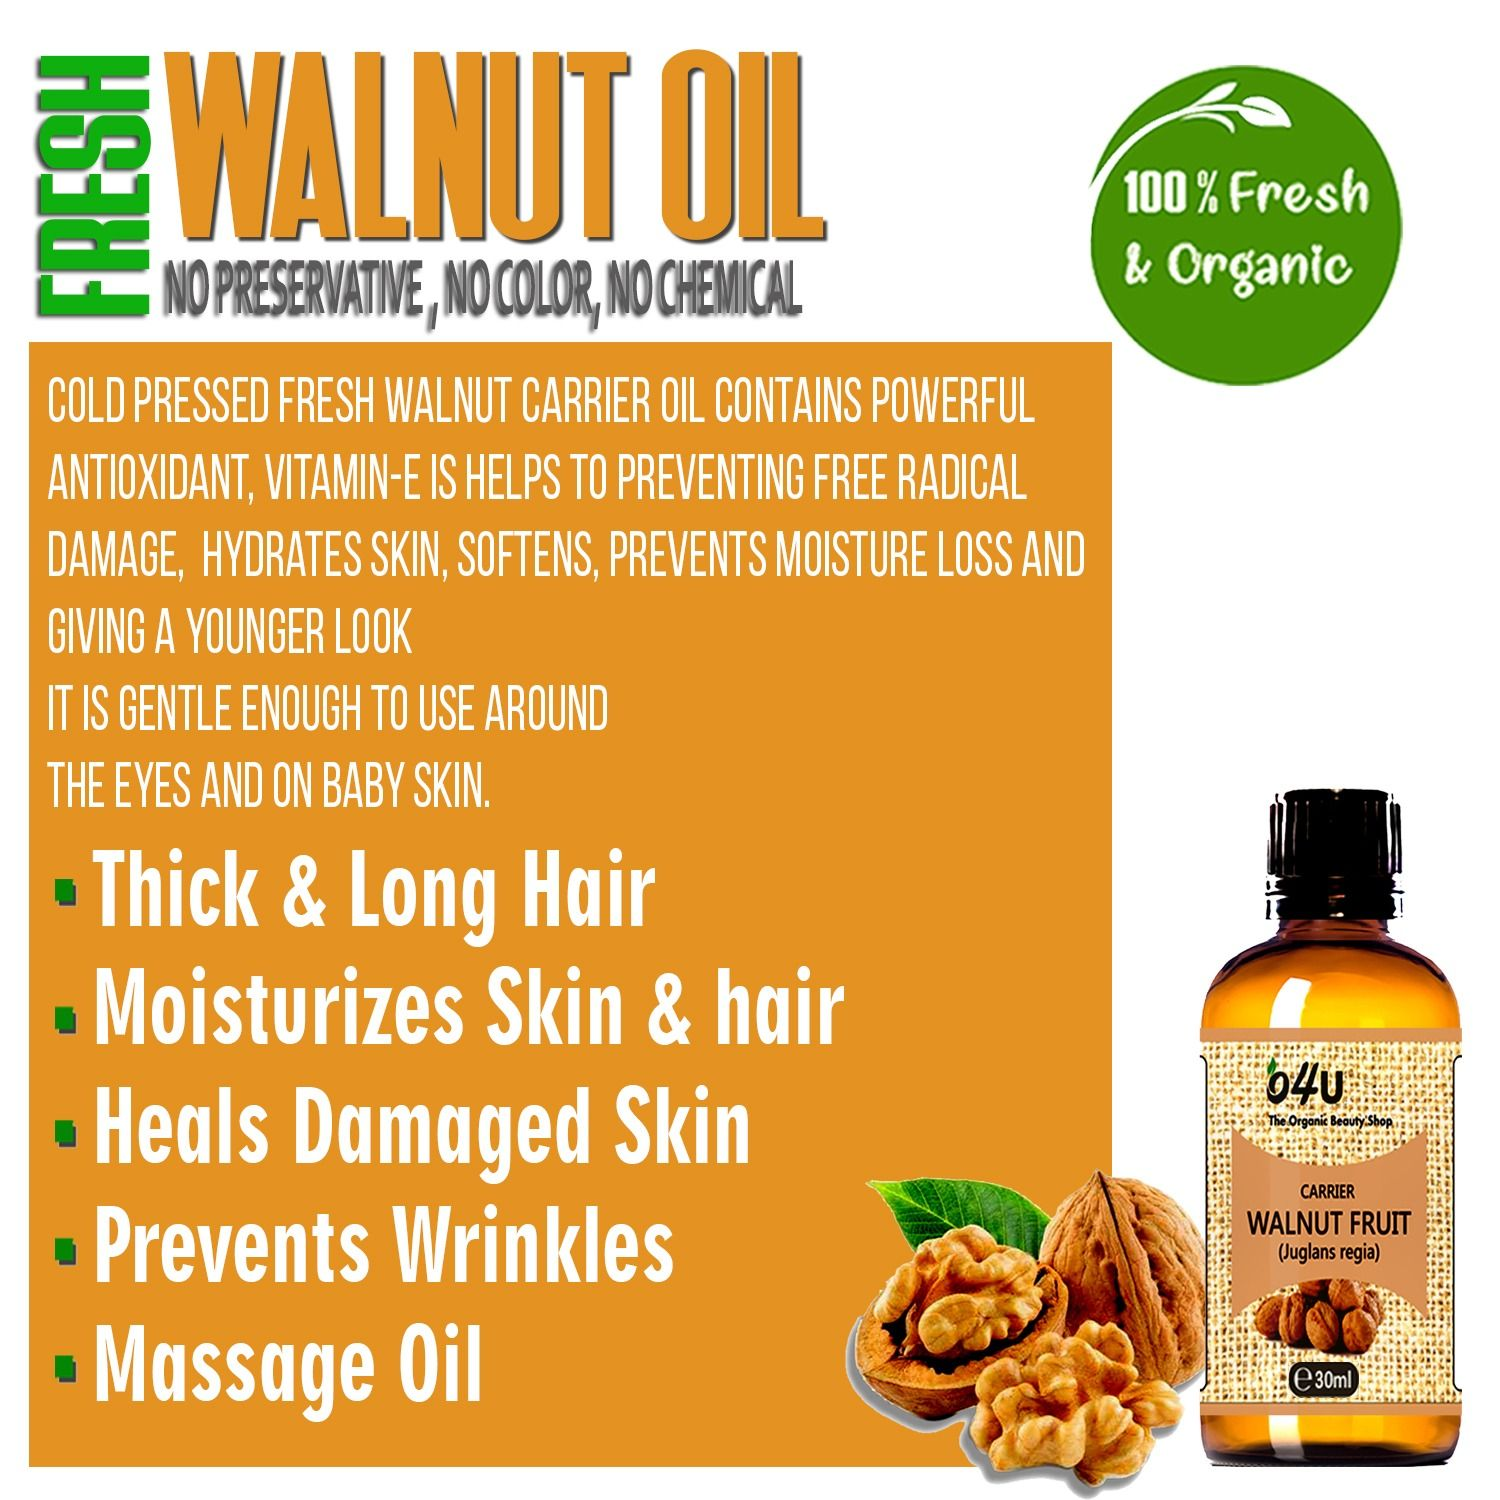 Walnut oil is great for fighting wrinkles. It has a greasy